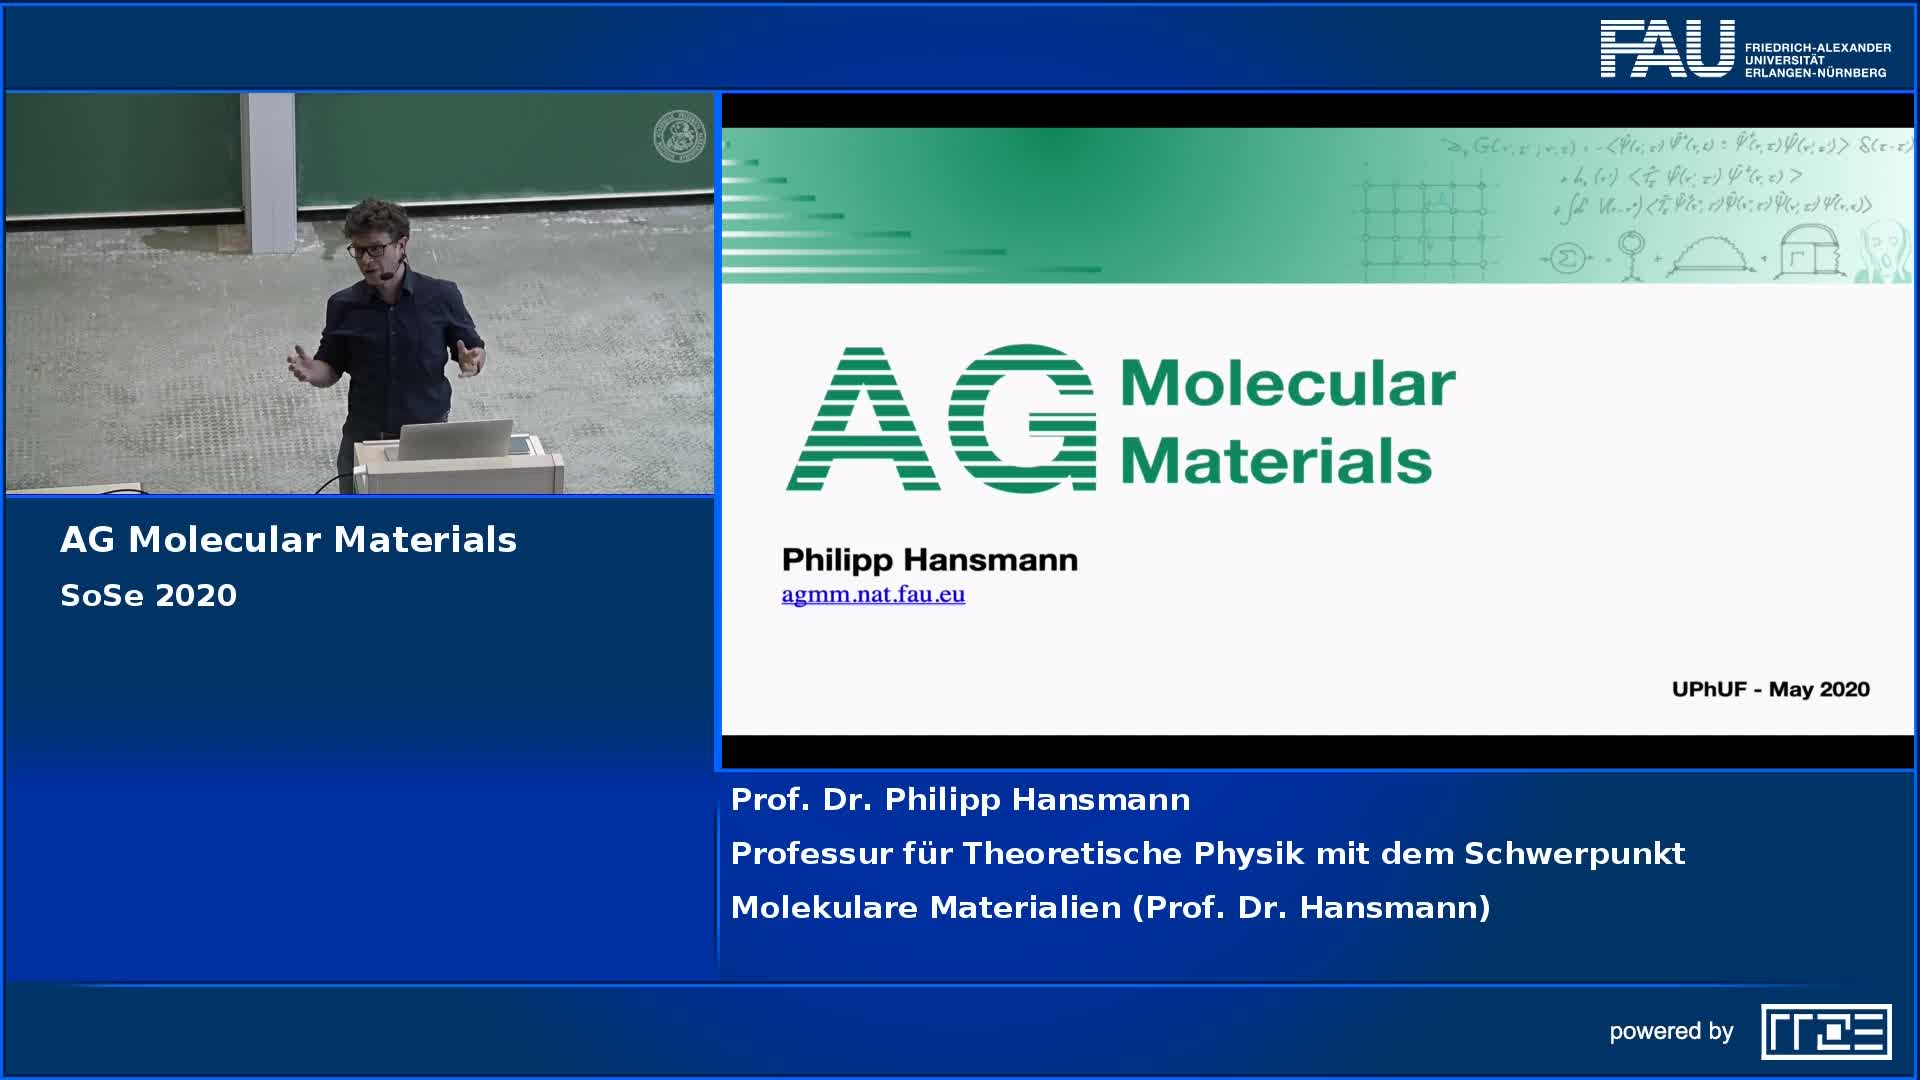 AG Molecular Materials preview image